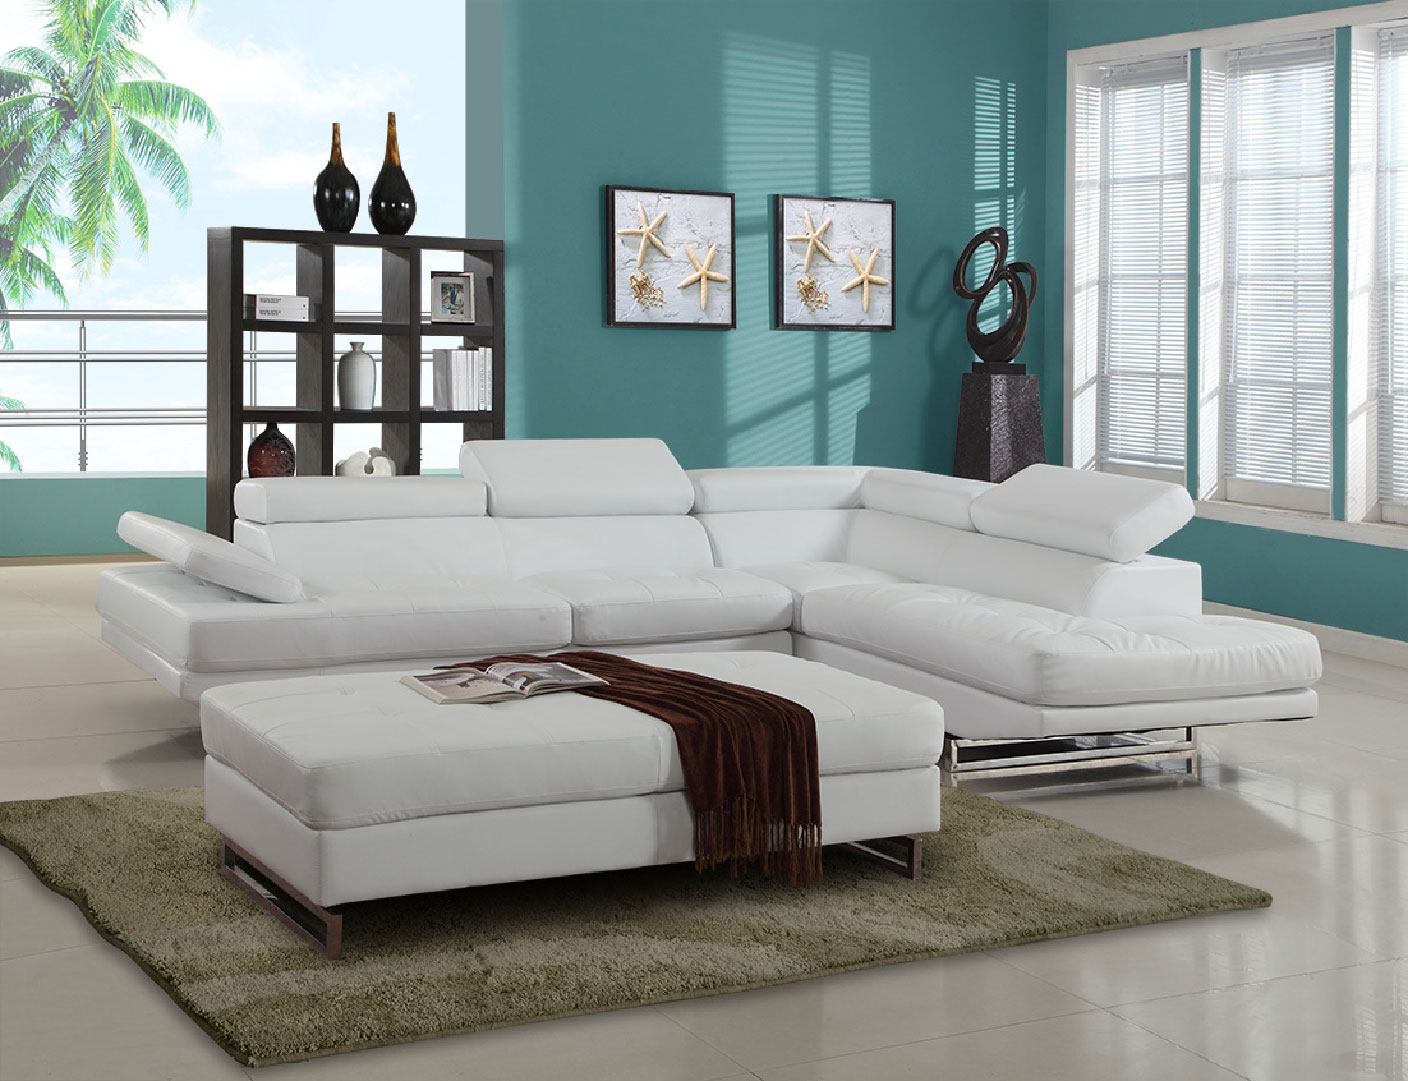 product wood trim white on sofa com salon wooden buy round alibaba detail couch beauty sectional